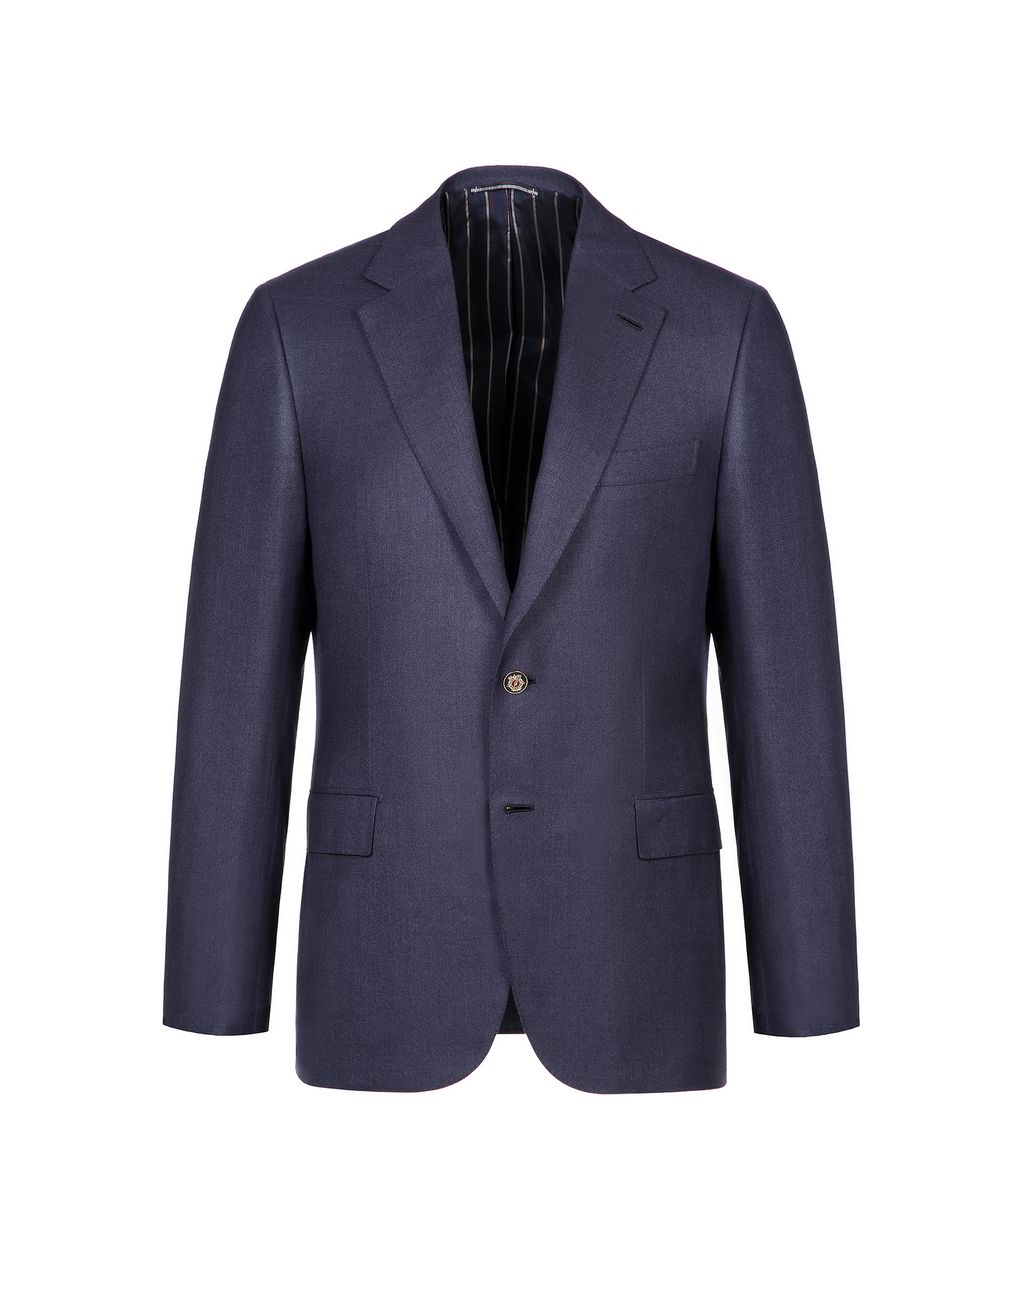 BRIONI Navy Blue Ravello Jacket Suits & Jackets Man f